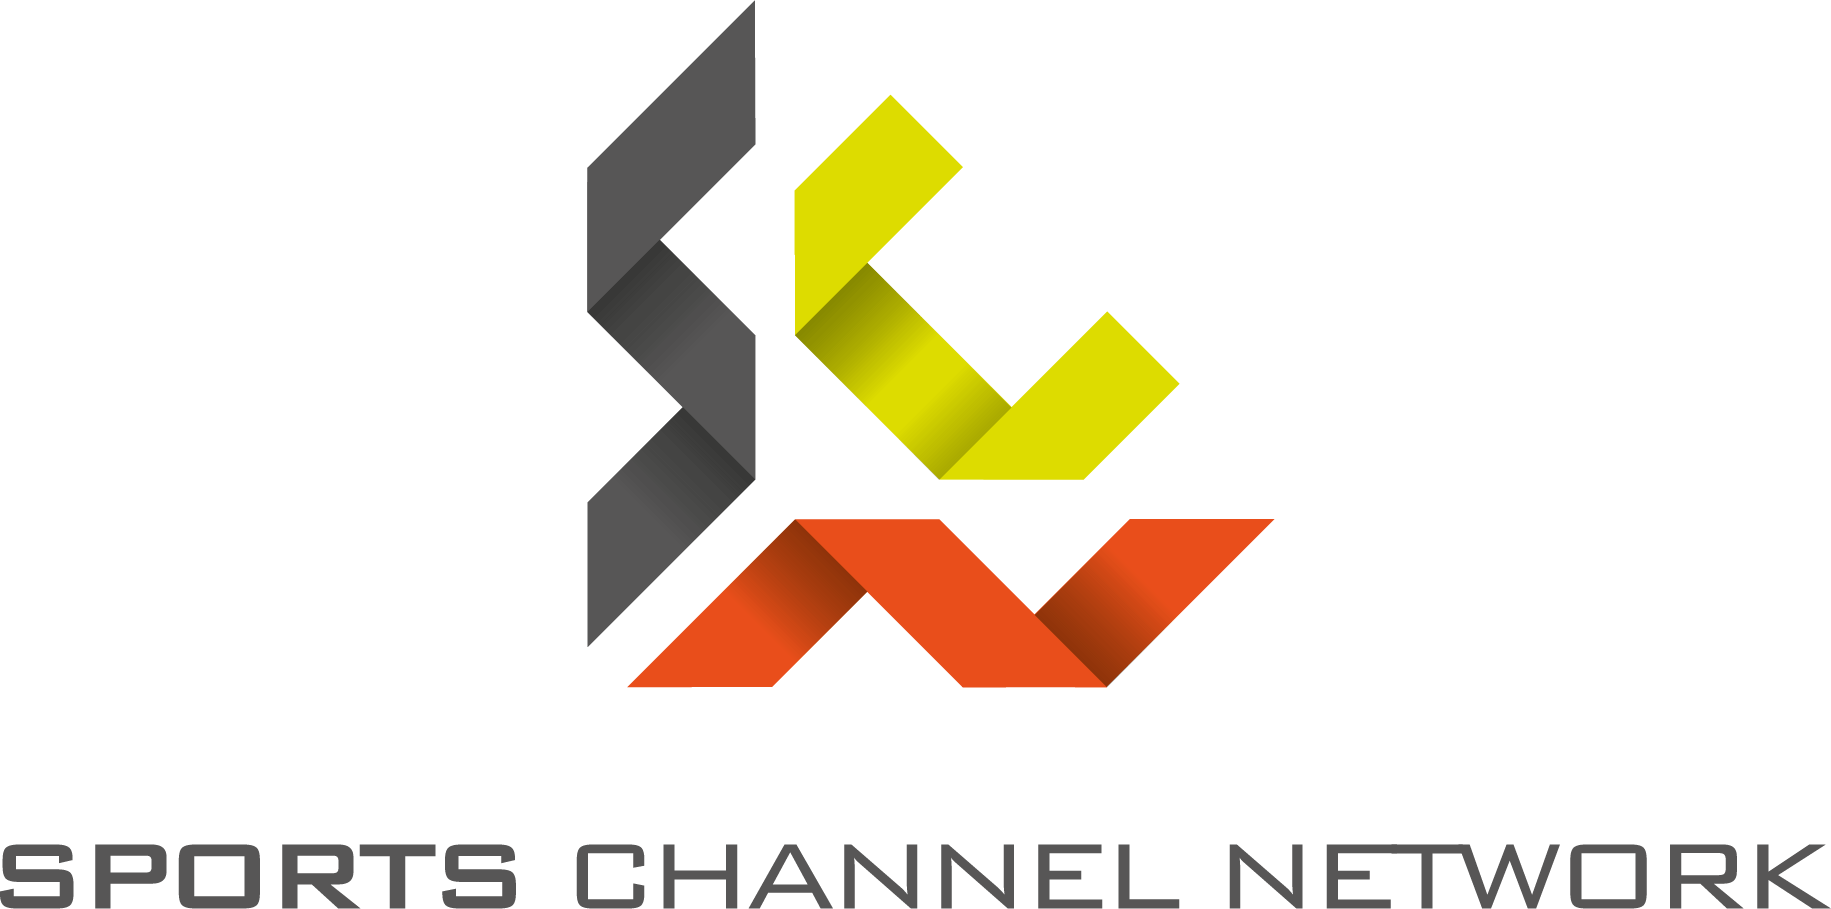 Sports Channel Network